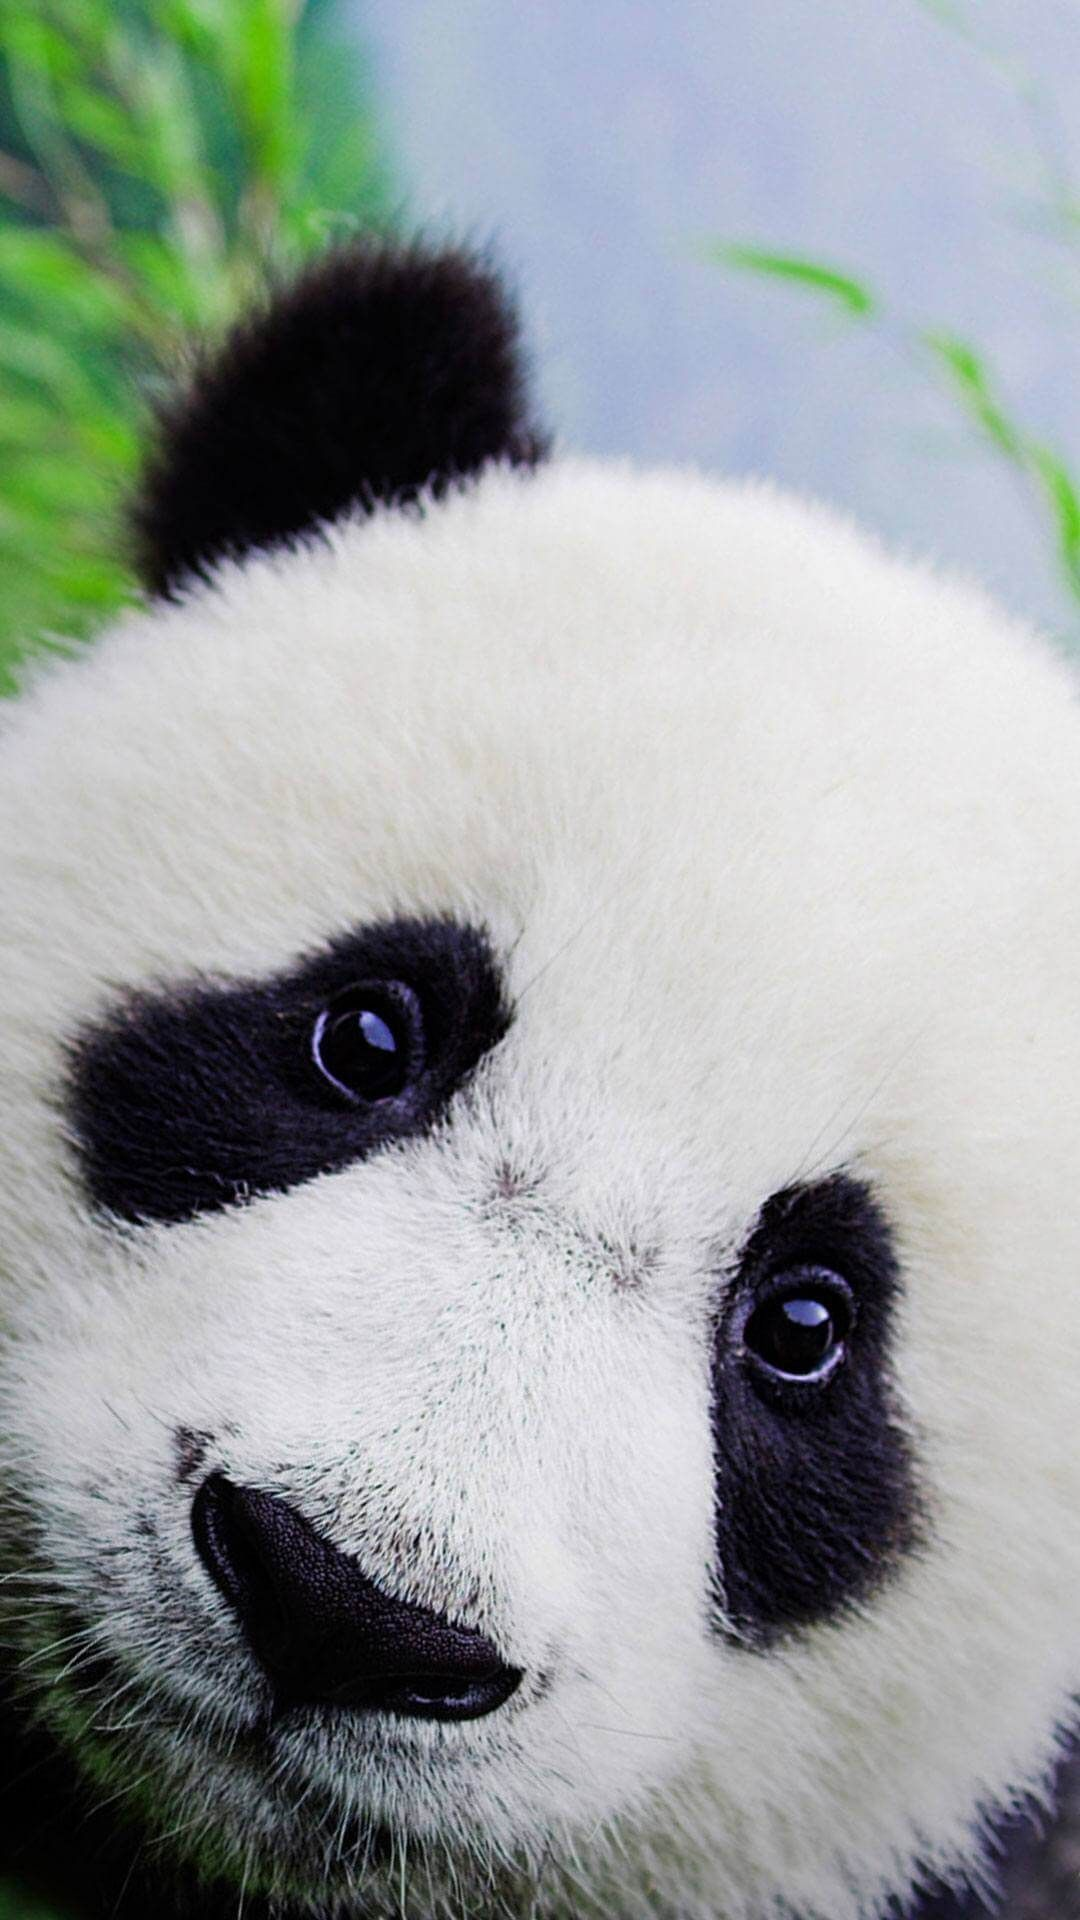 Best Of Cute Baby Adorable Panda Wallpaper Red Panda Cool Wallpapers Cartoon Images Pictures In 2020 Cute Baby Animals Cute Panda Wallpaper Panda Wallpapers